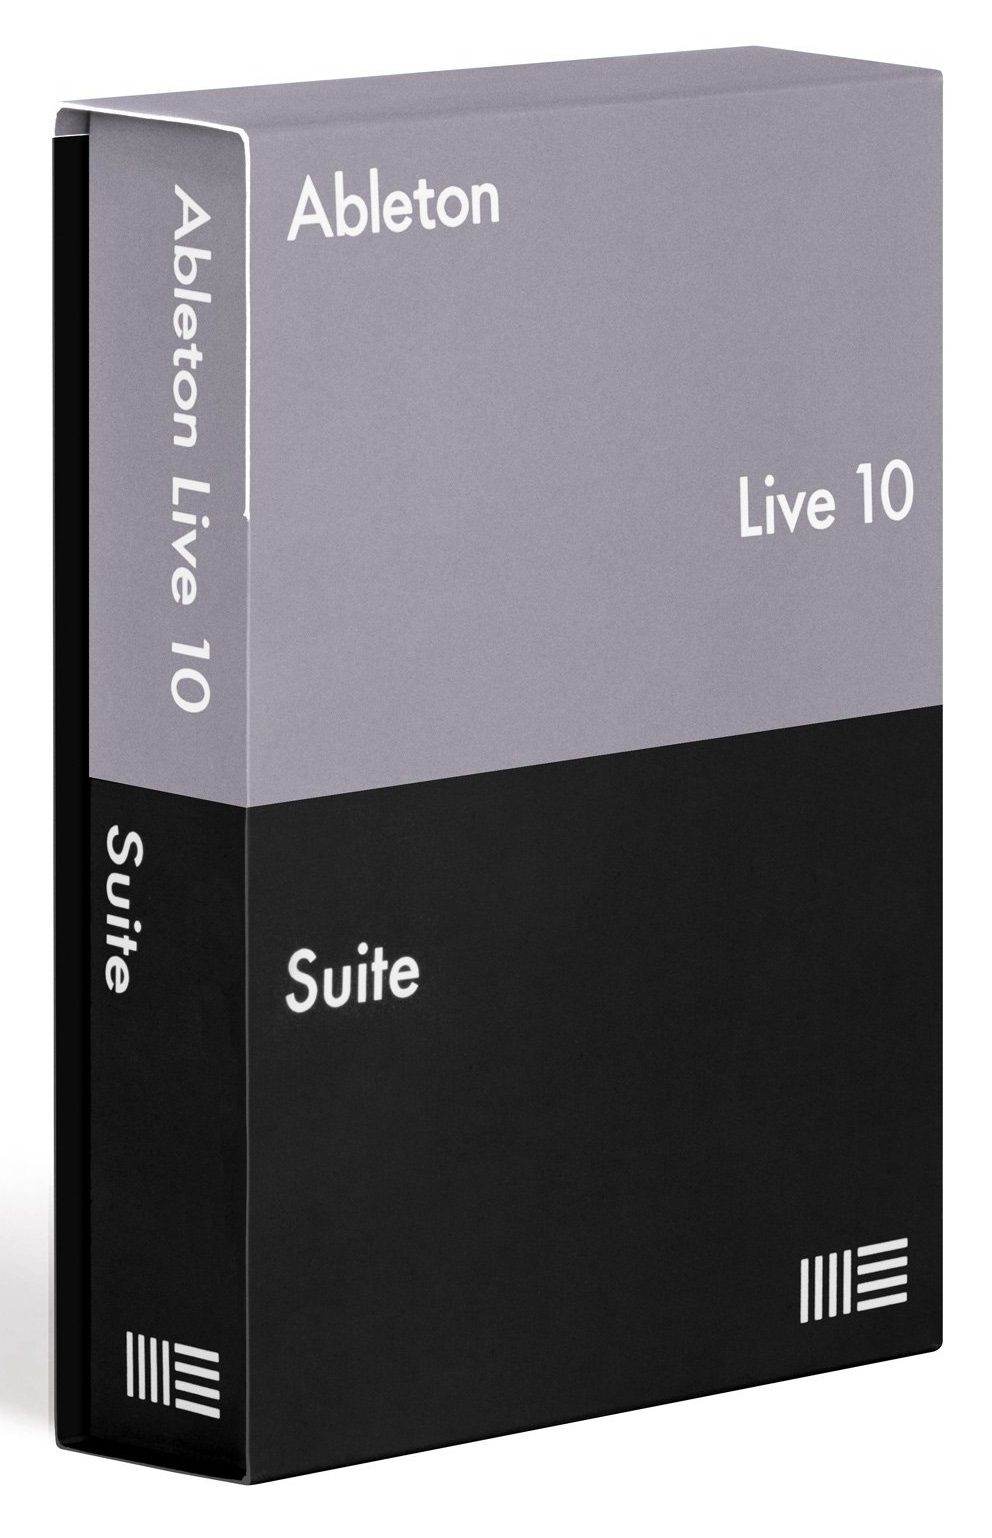 ableton live 9.7 free download full version